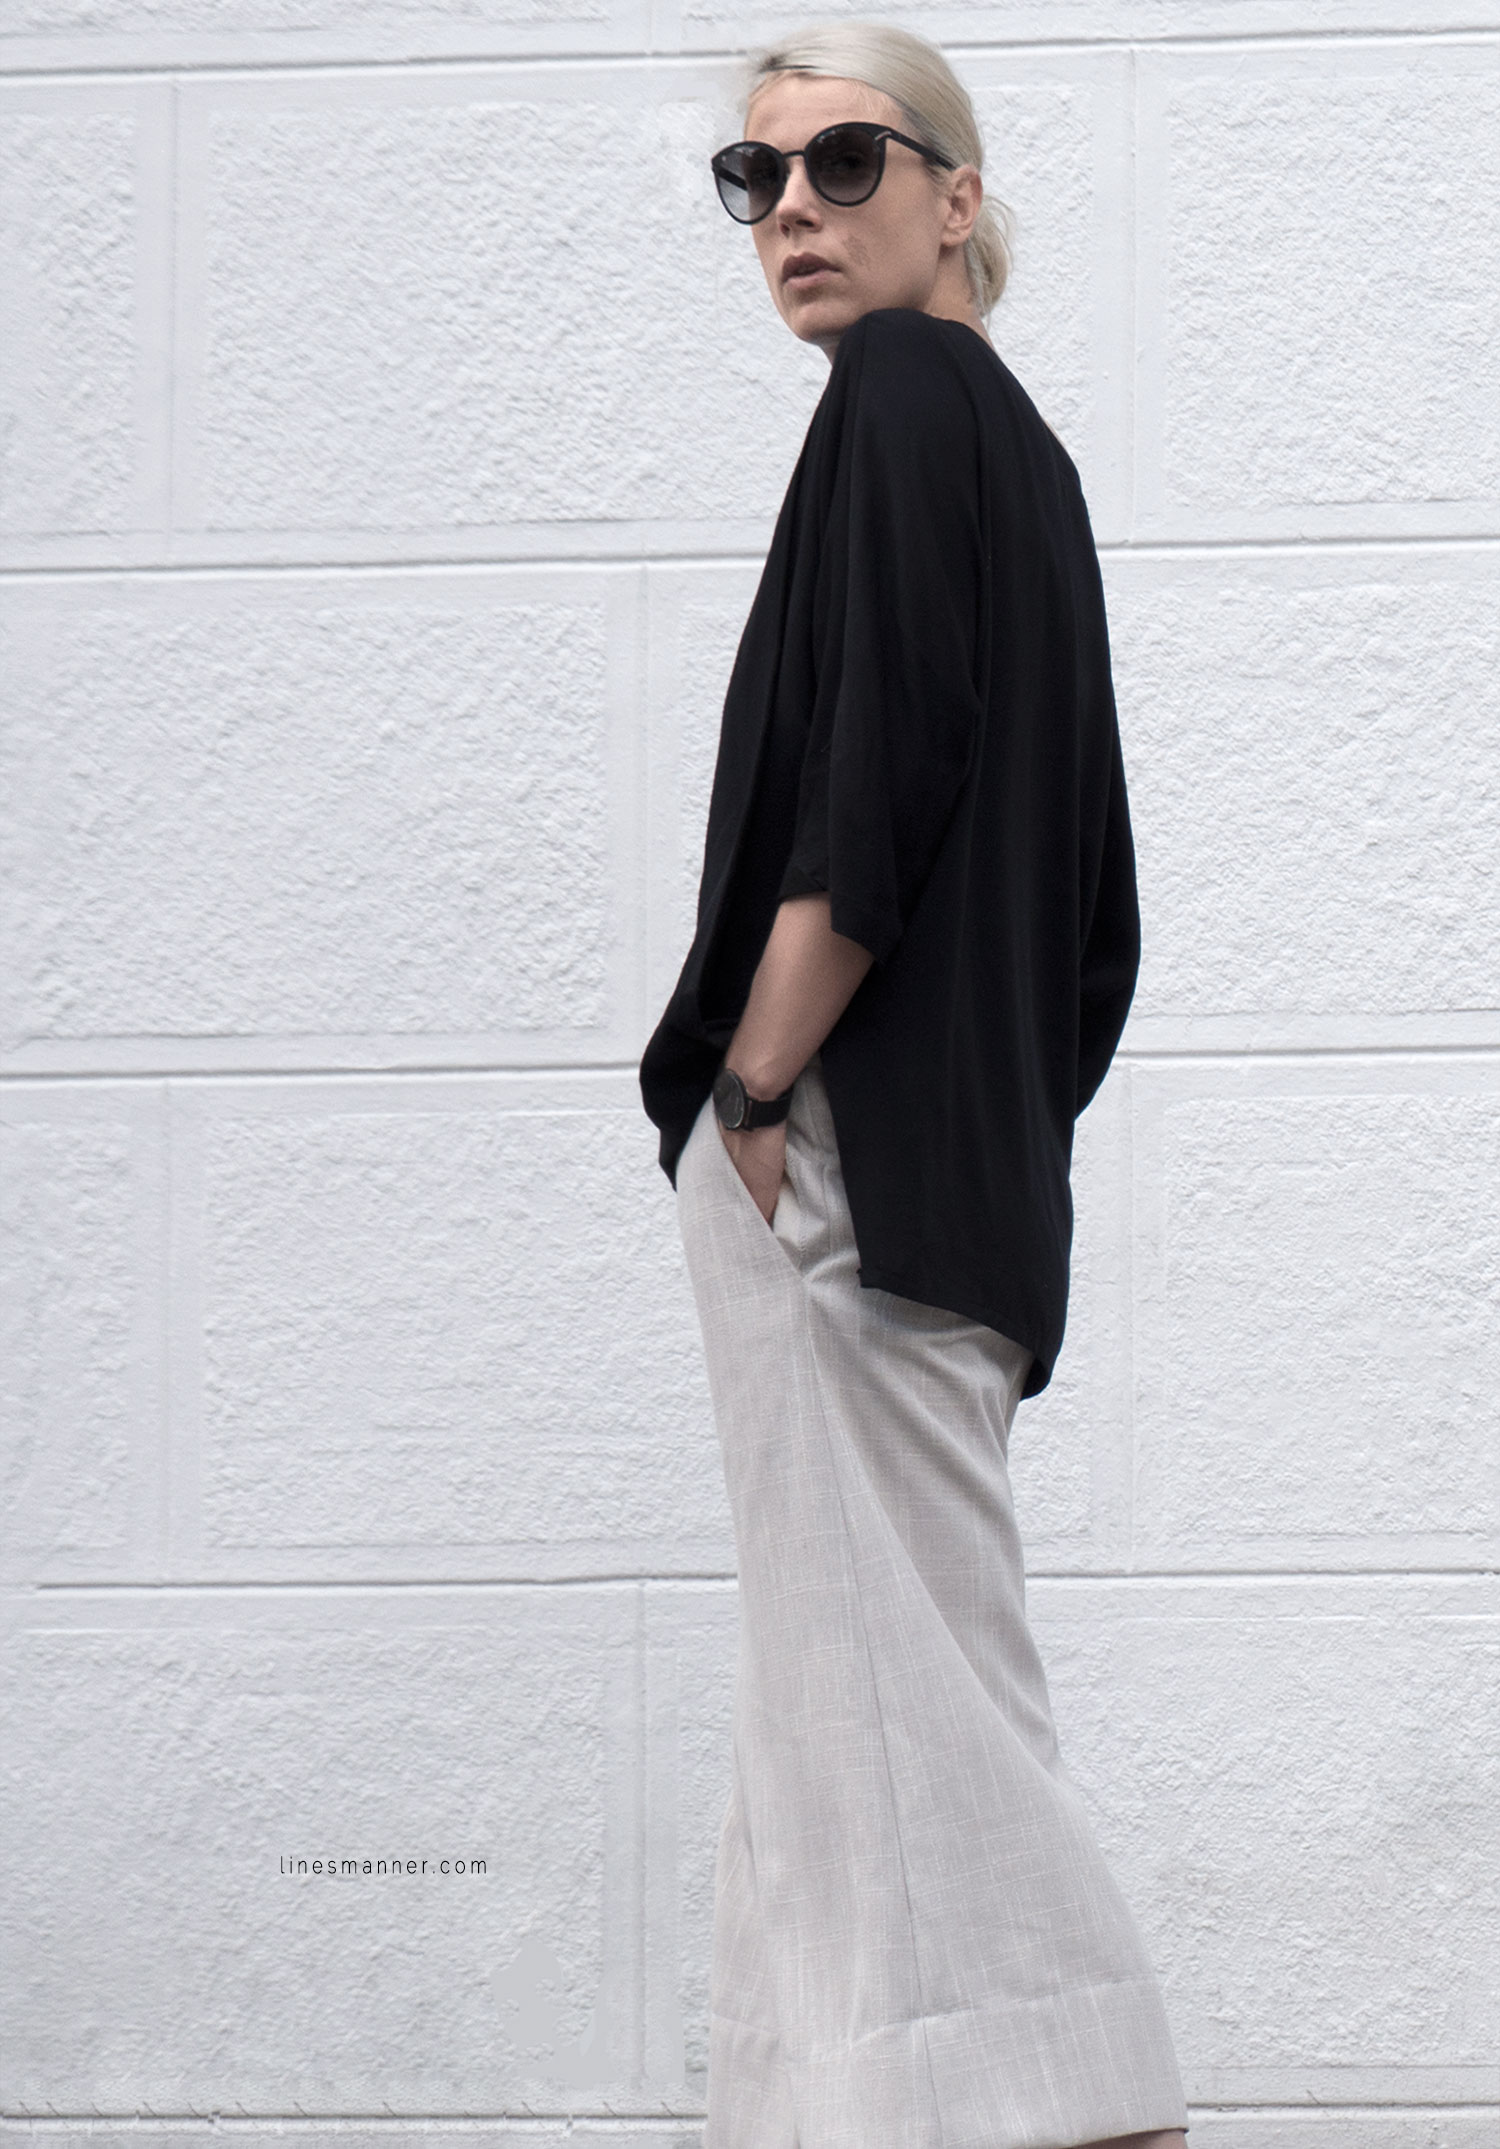 Lines-Manner-Modern-Minimal-Effortless-Casual-Wide_Leg_Culotte-Coidlyn_Wight-Draped-Coton-Linen-Sustainable-Slow_Fashion-Neutrals-Structure-Volume-Fluid-Simplicity-Details-8